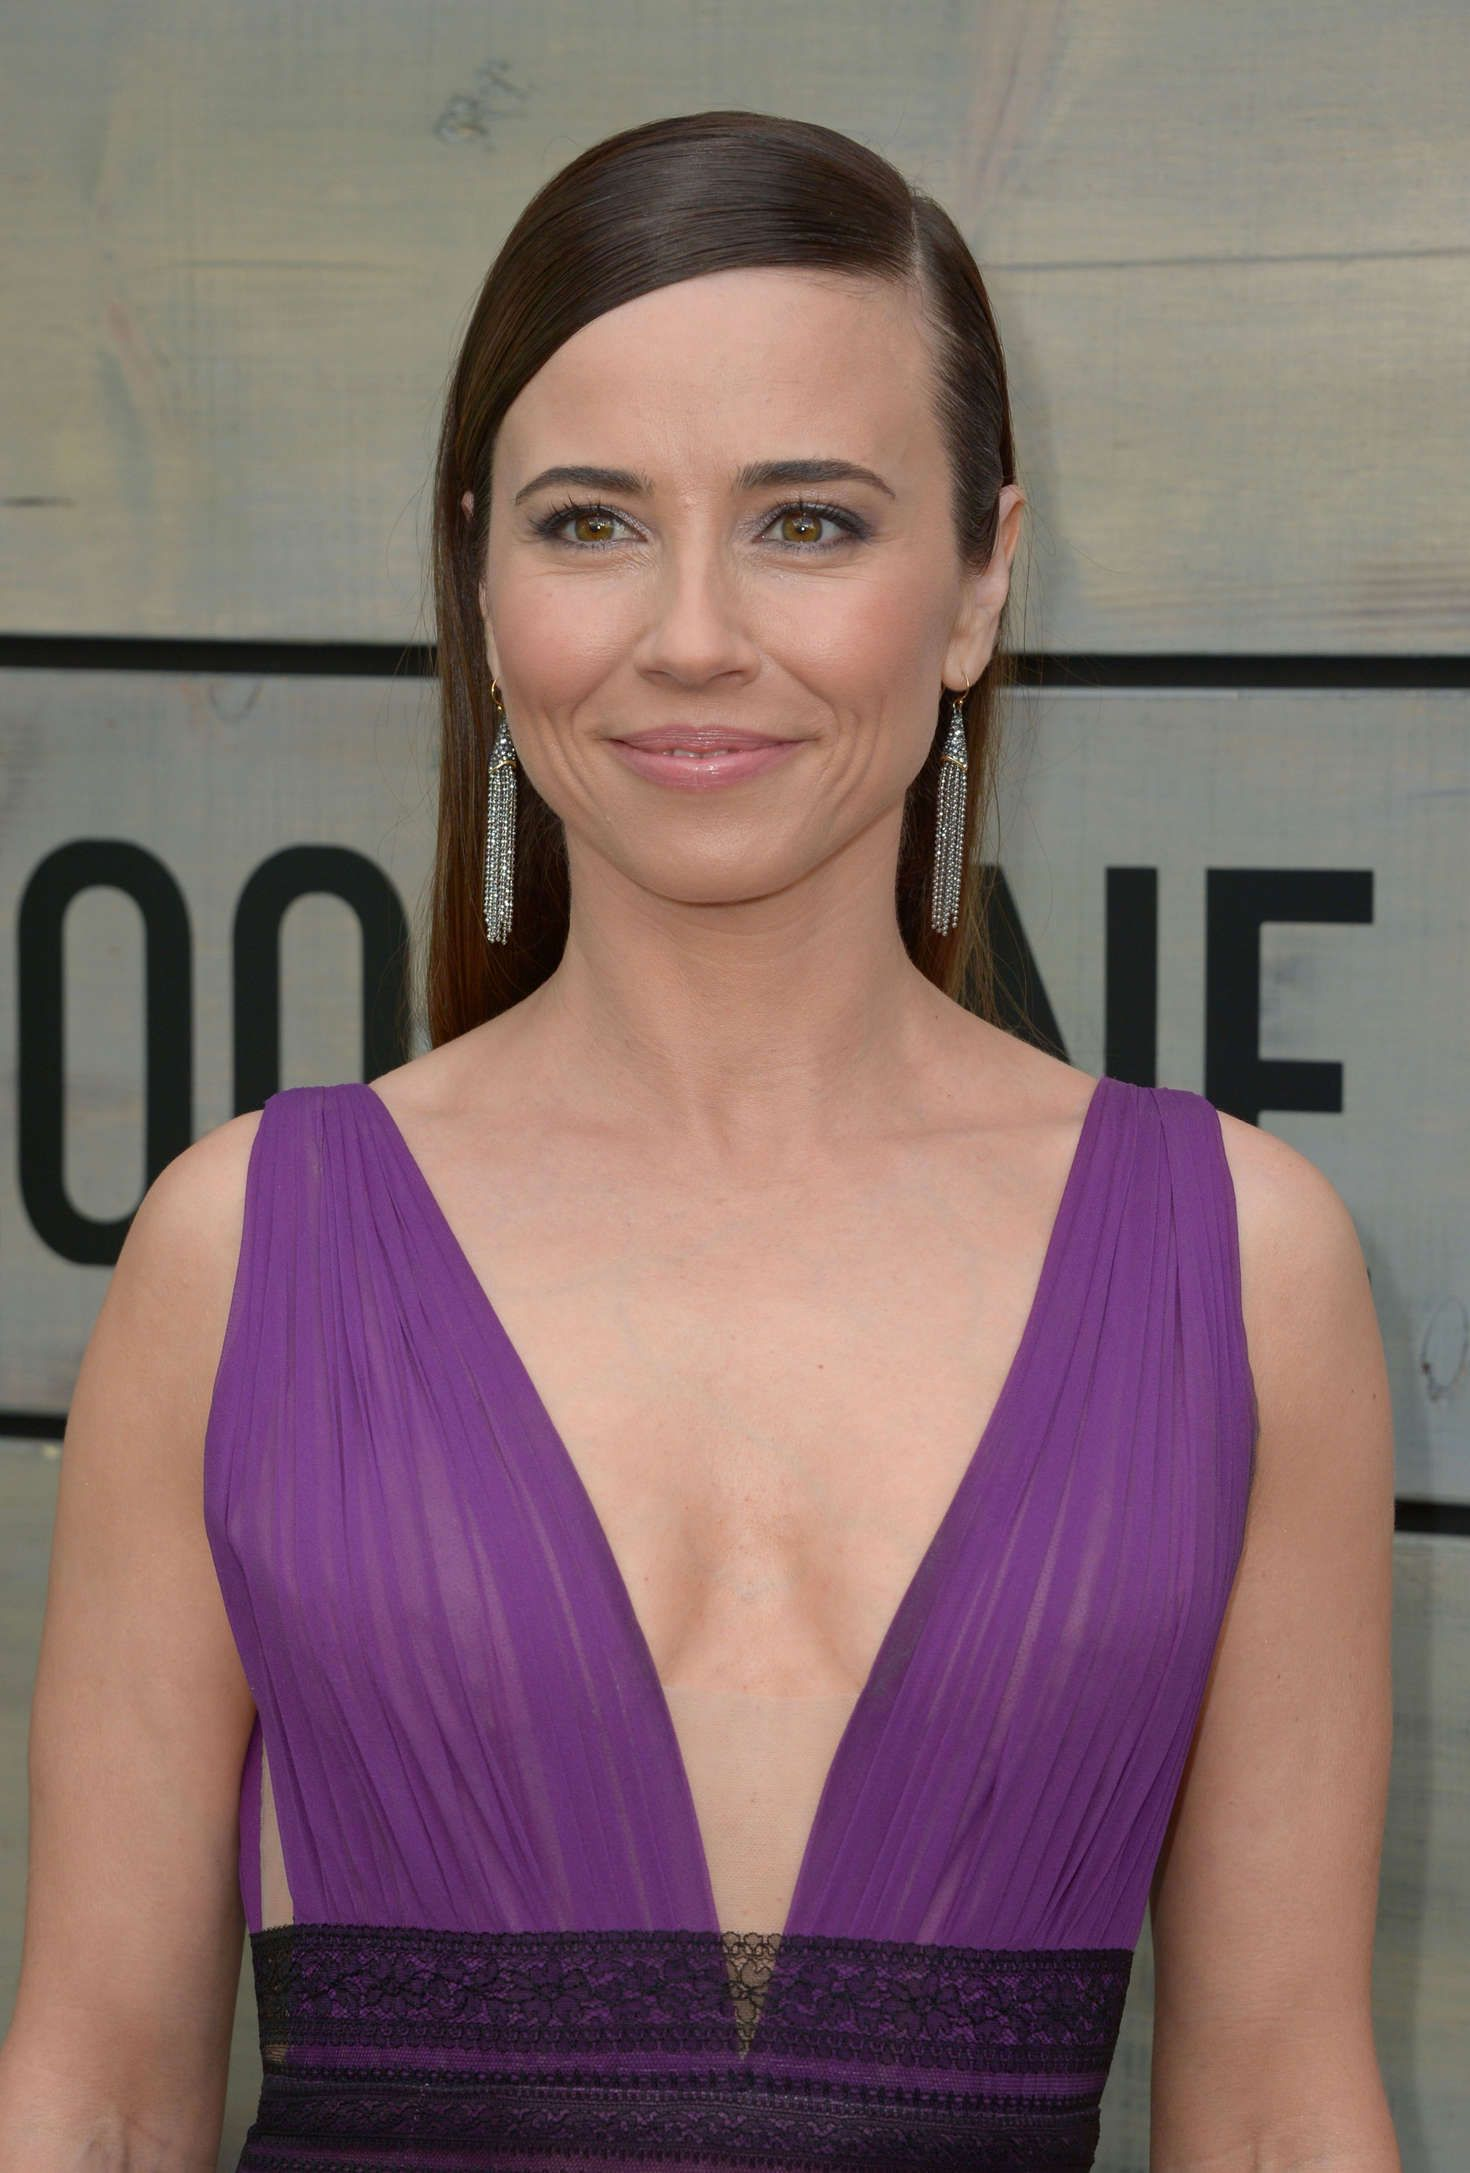 images for the show bloodline Linda Cardellini